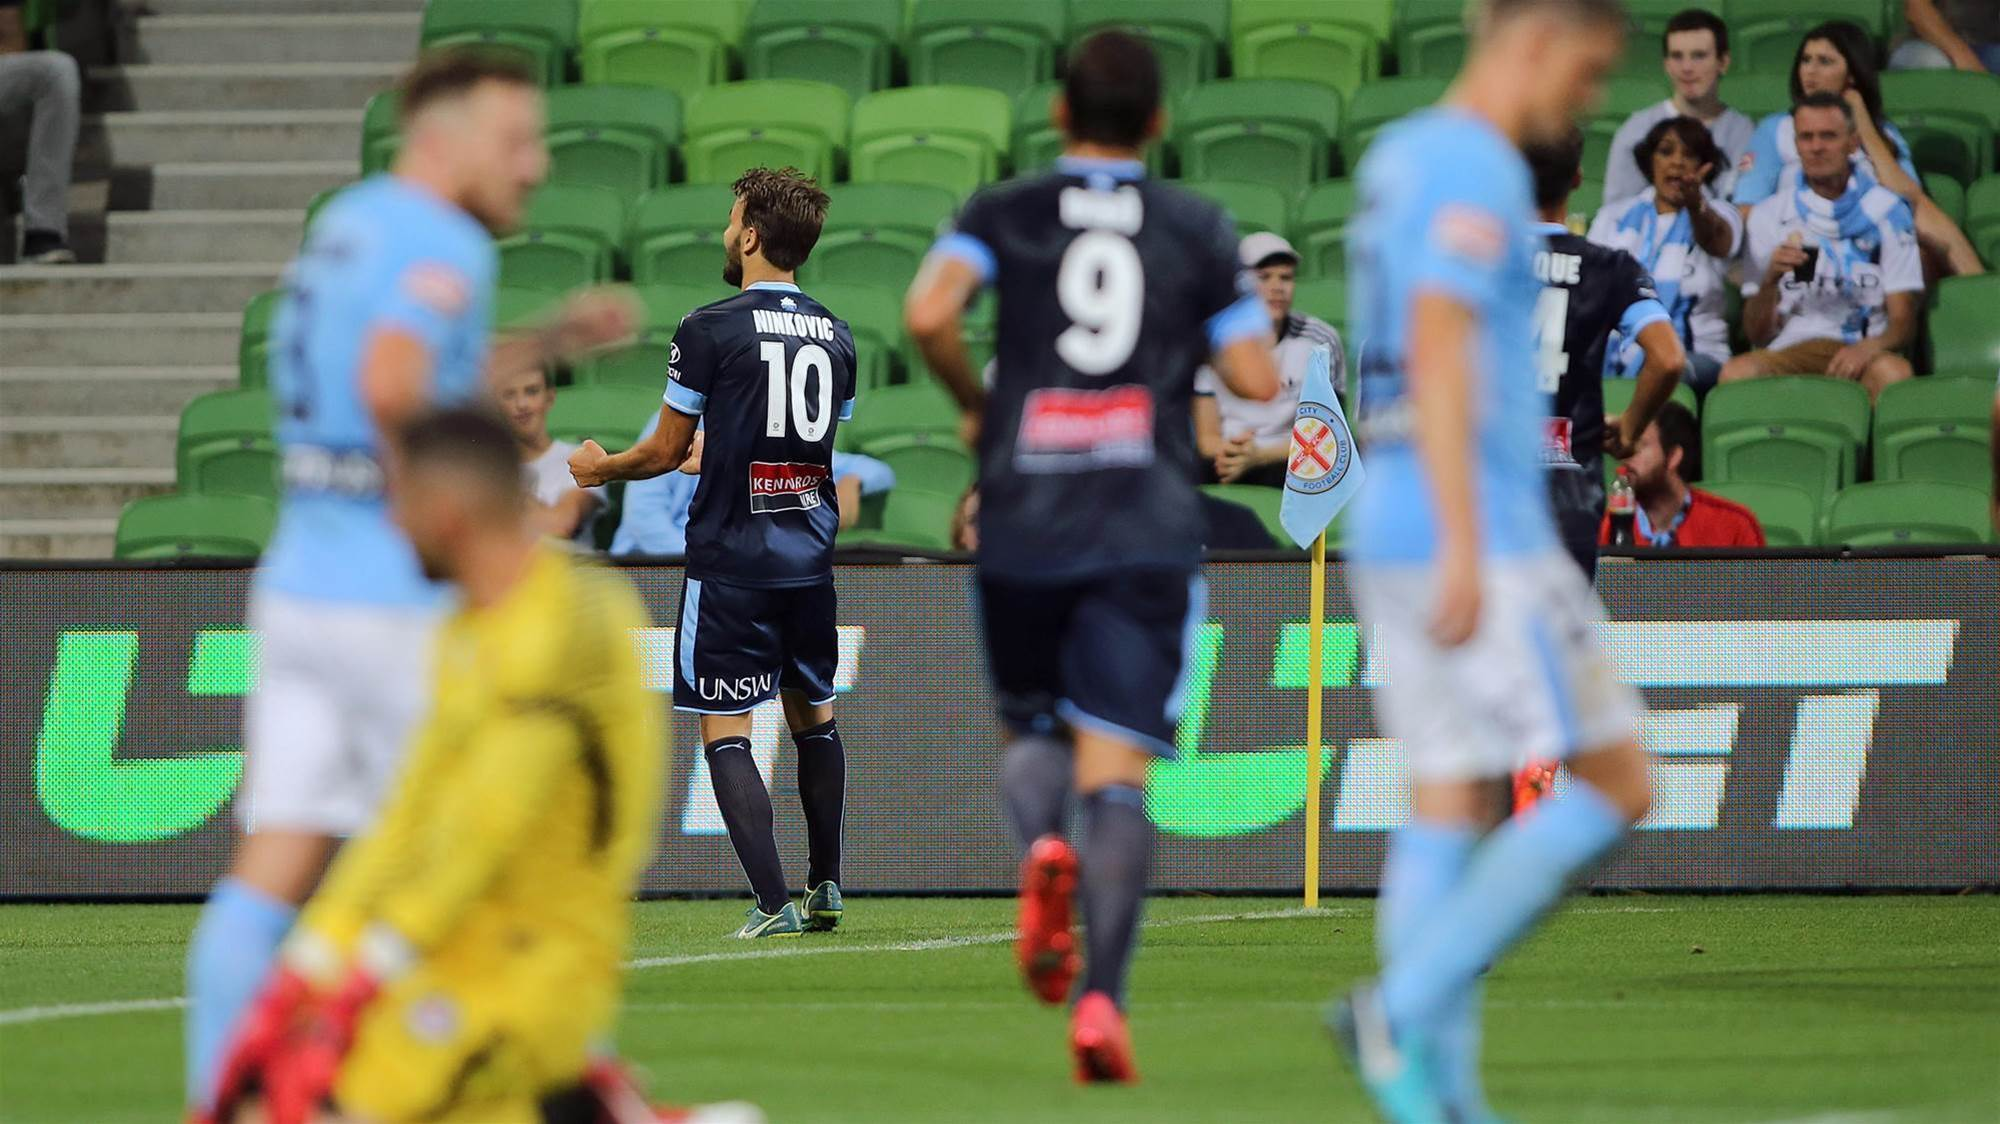 Crushing Melbourne City not enough for Zullo